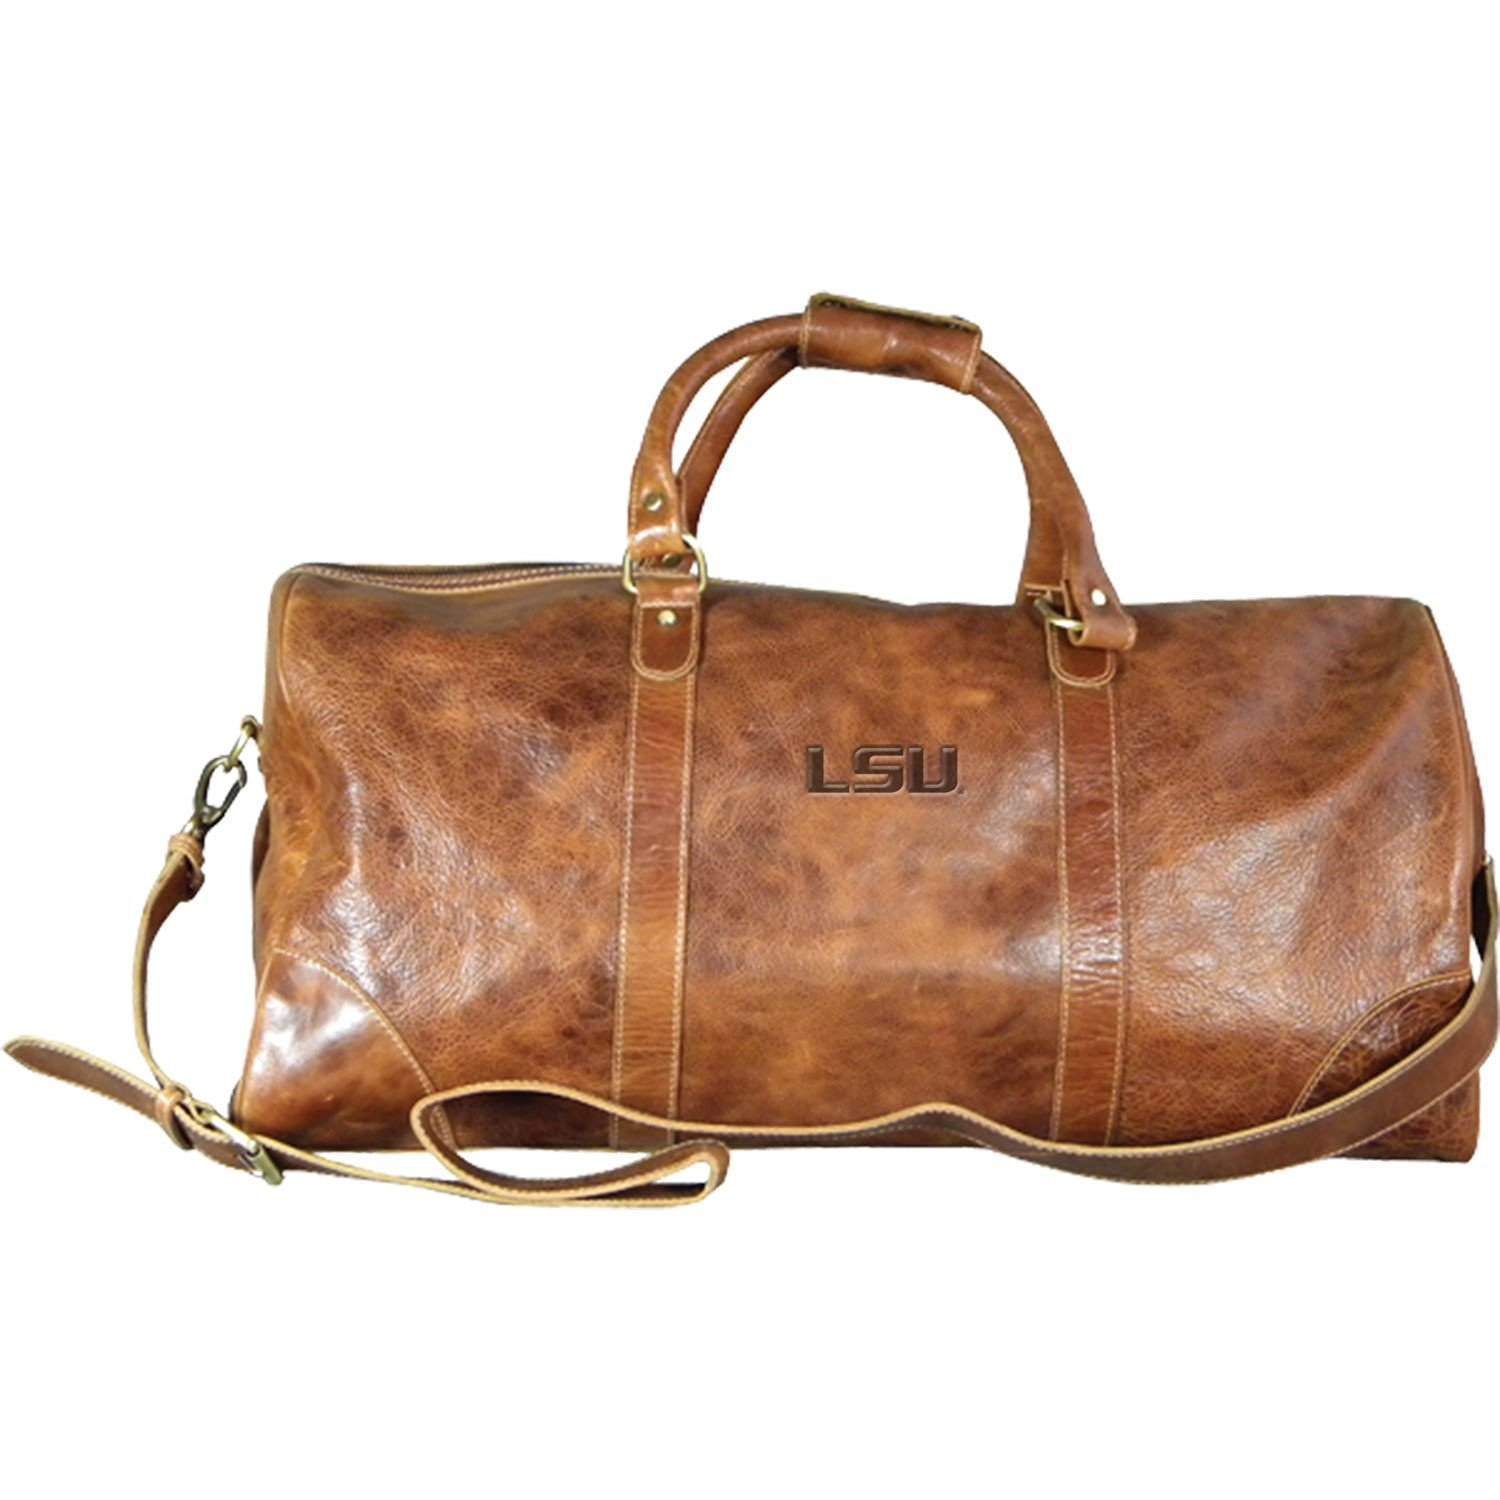 a9fcab5fbf56 Buy LSU Large Leather Duffel Bag in Cheap Price on Alibaba.com